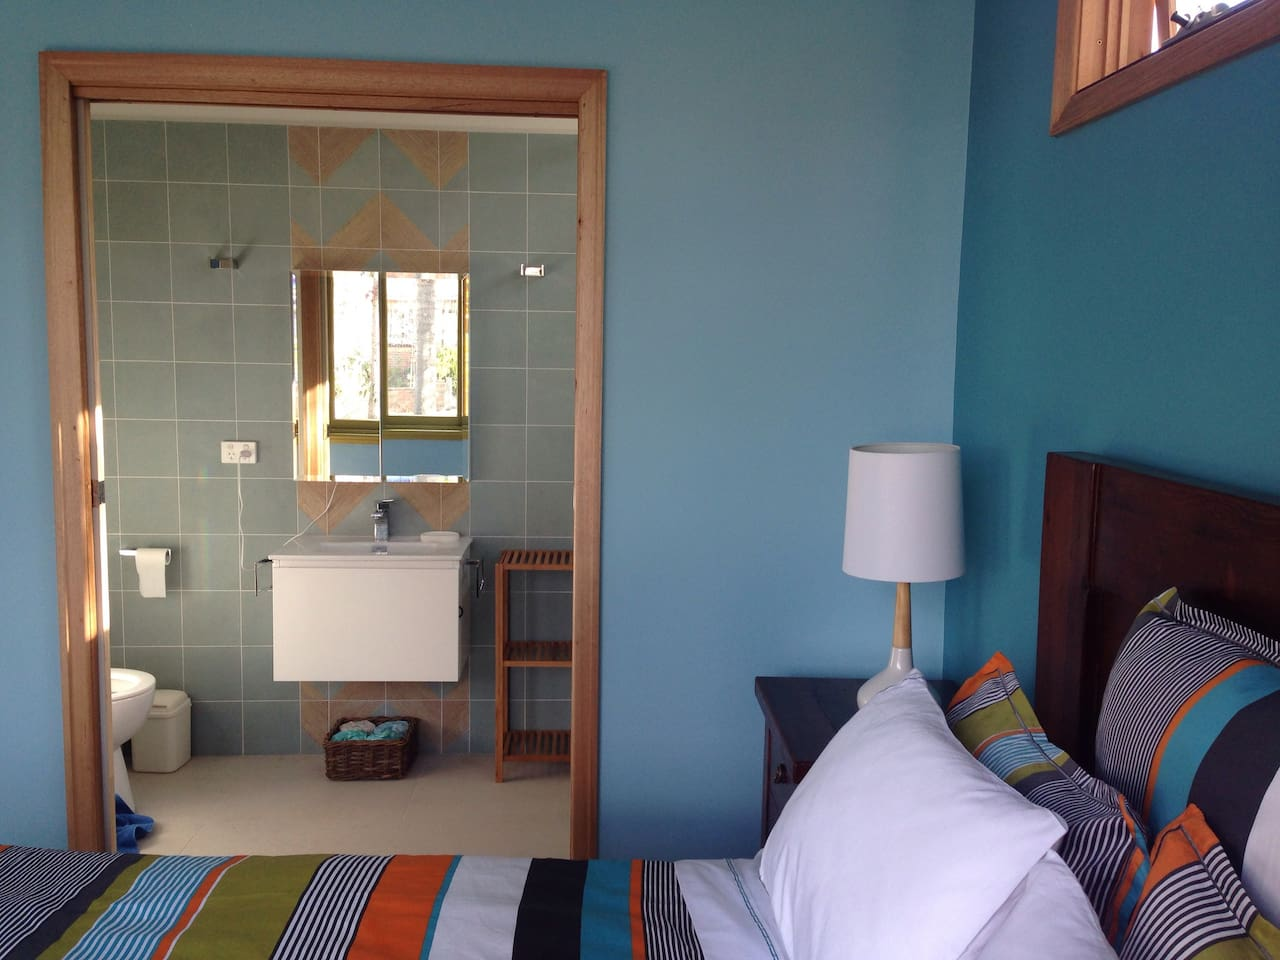 View of small bathroom from the bedroom.